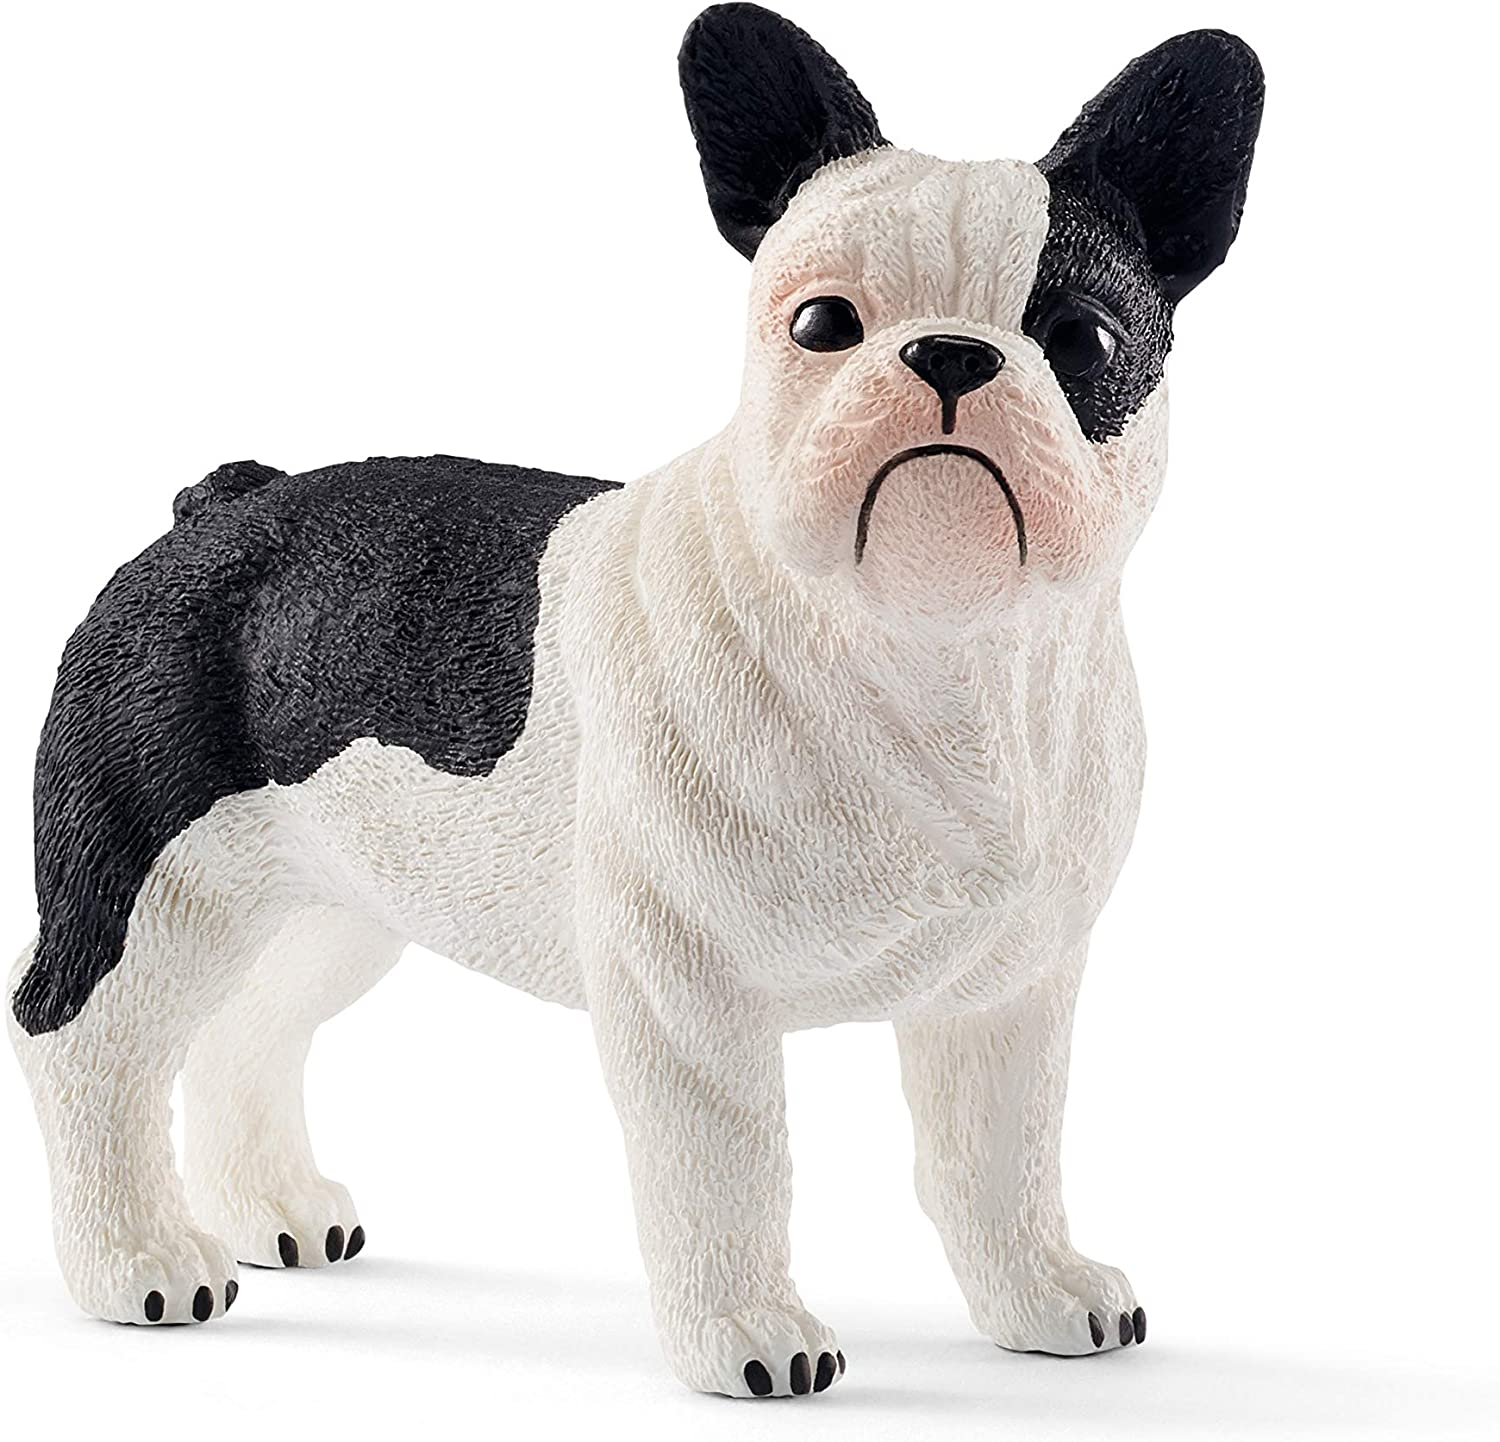 SCHLEICH Farm World French Bulldog Educational Figurine for Kids Ages 3-8